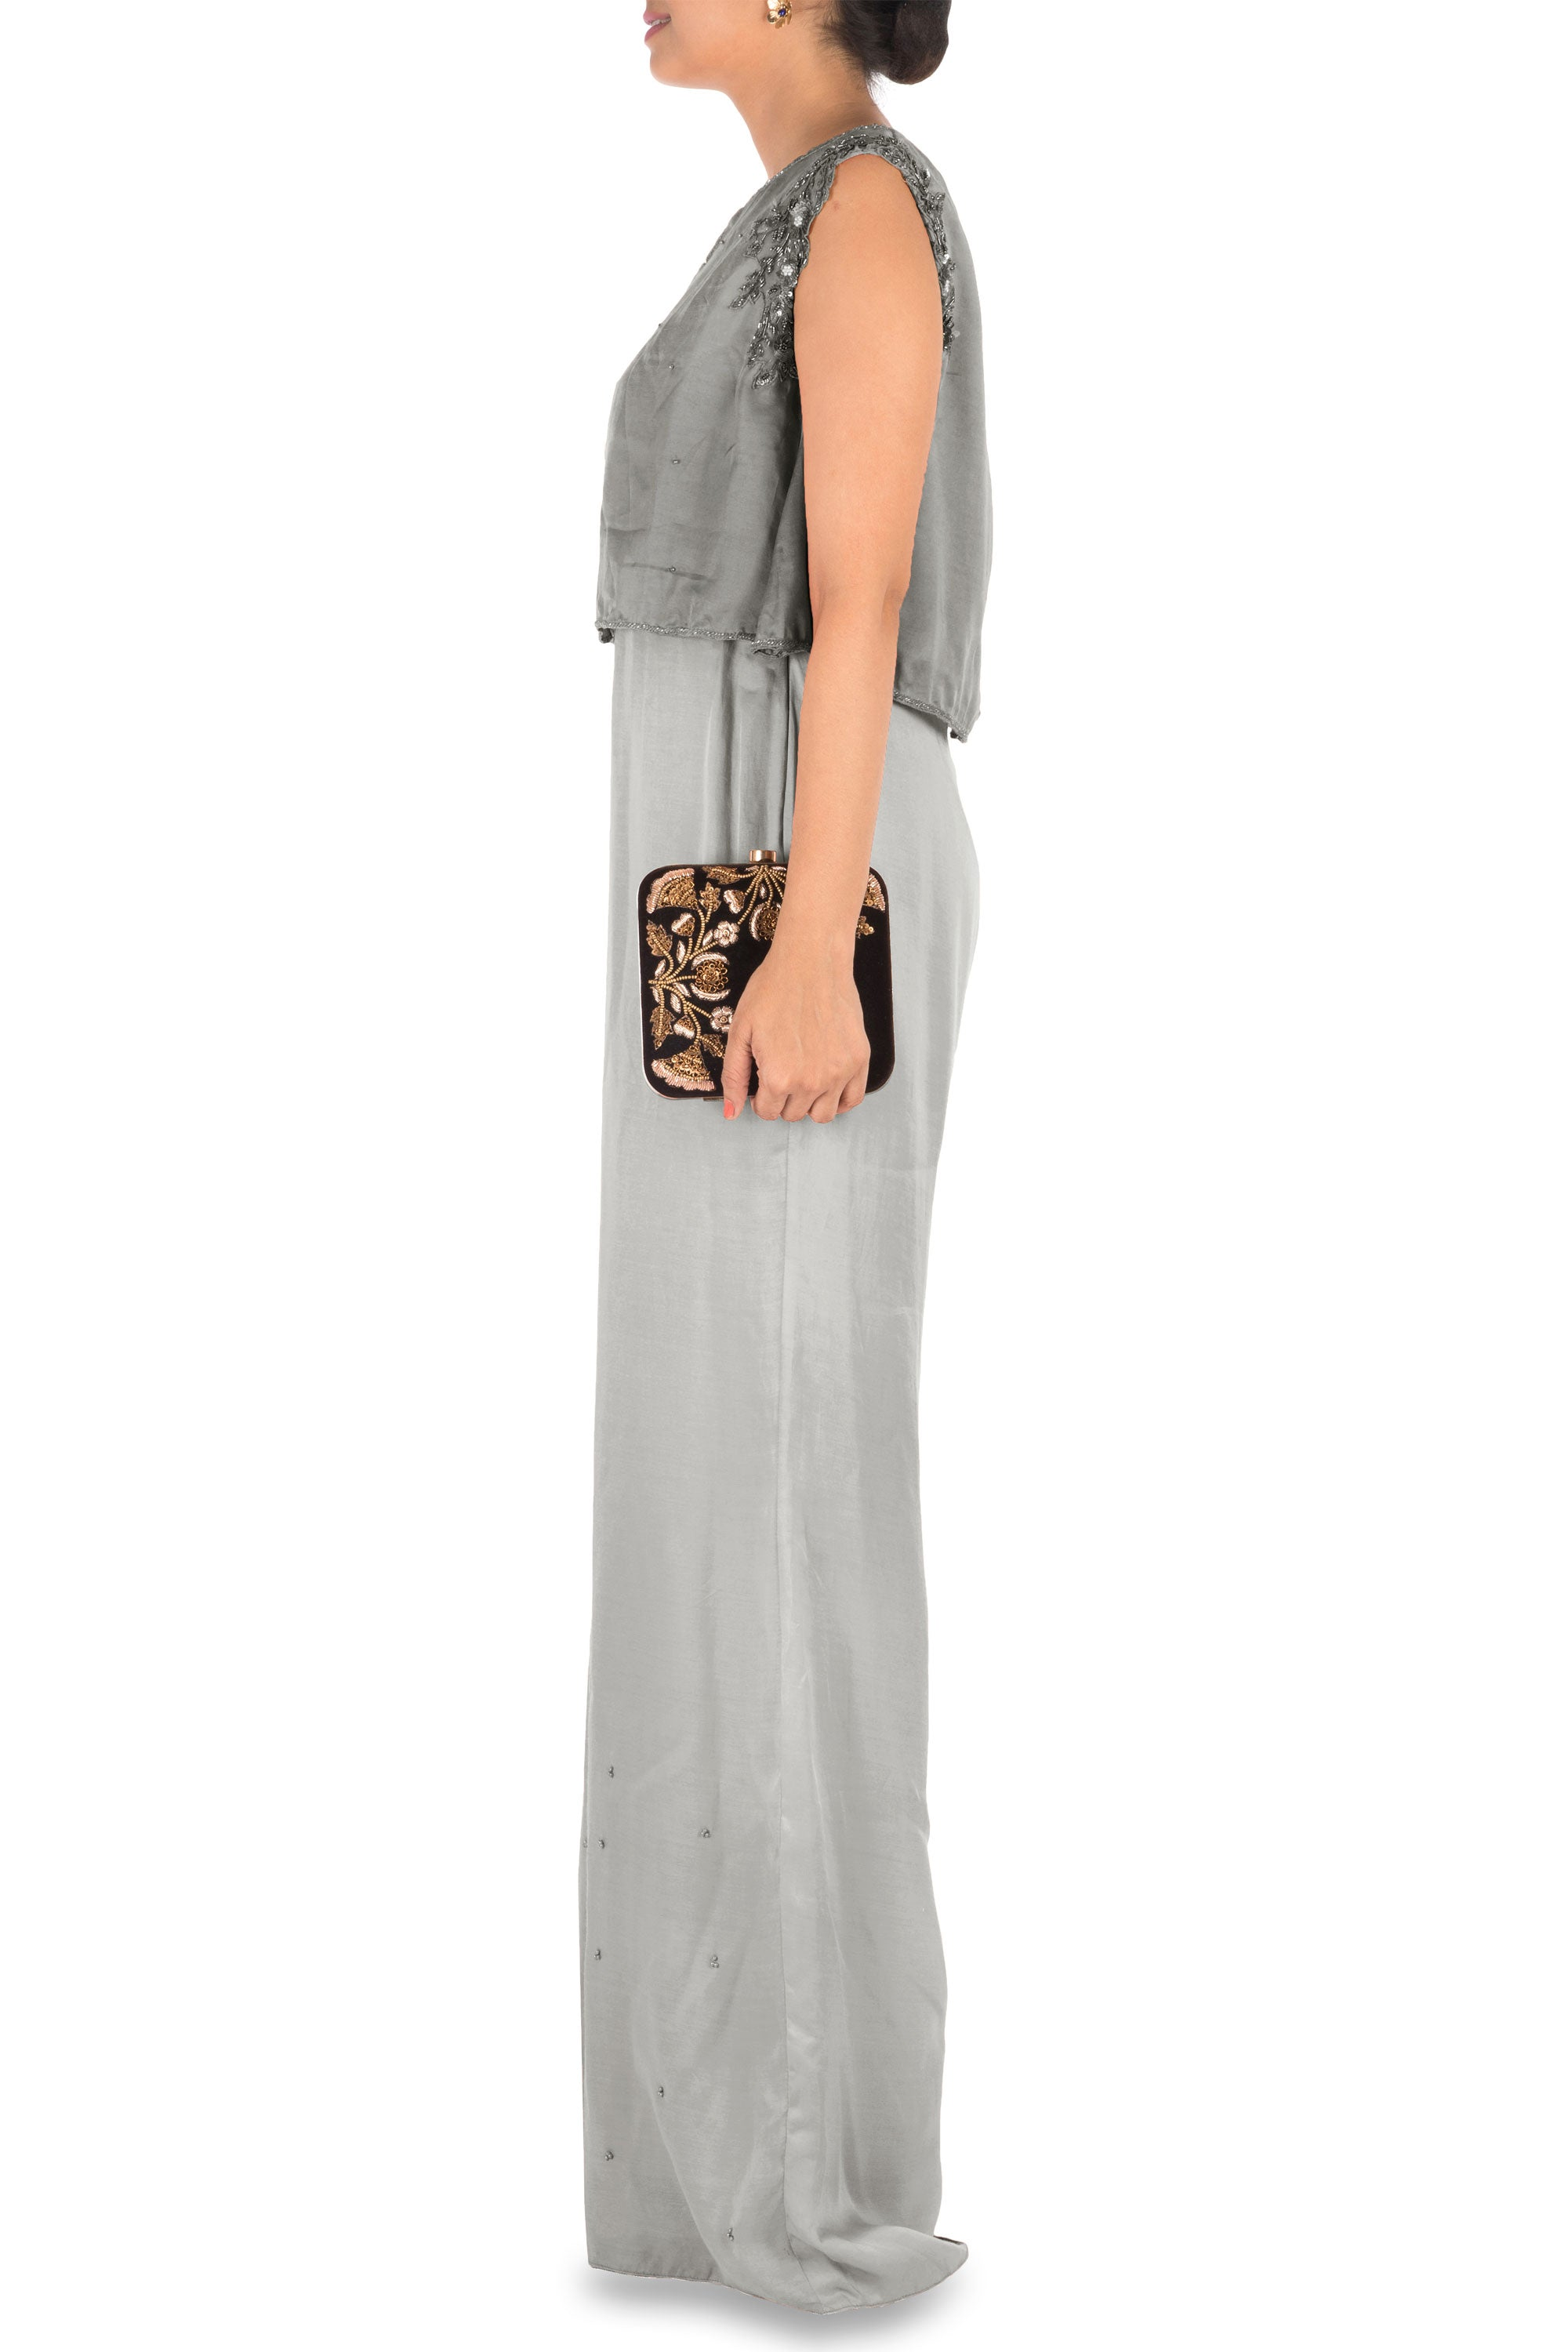 Hand Embroidered Grey Jumpsuit With Attach Jacket Side